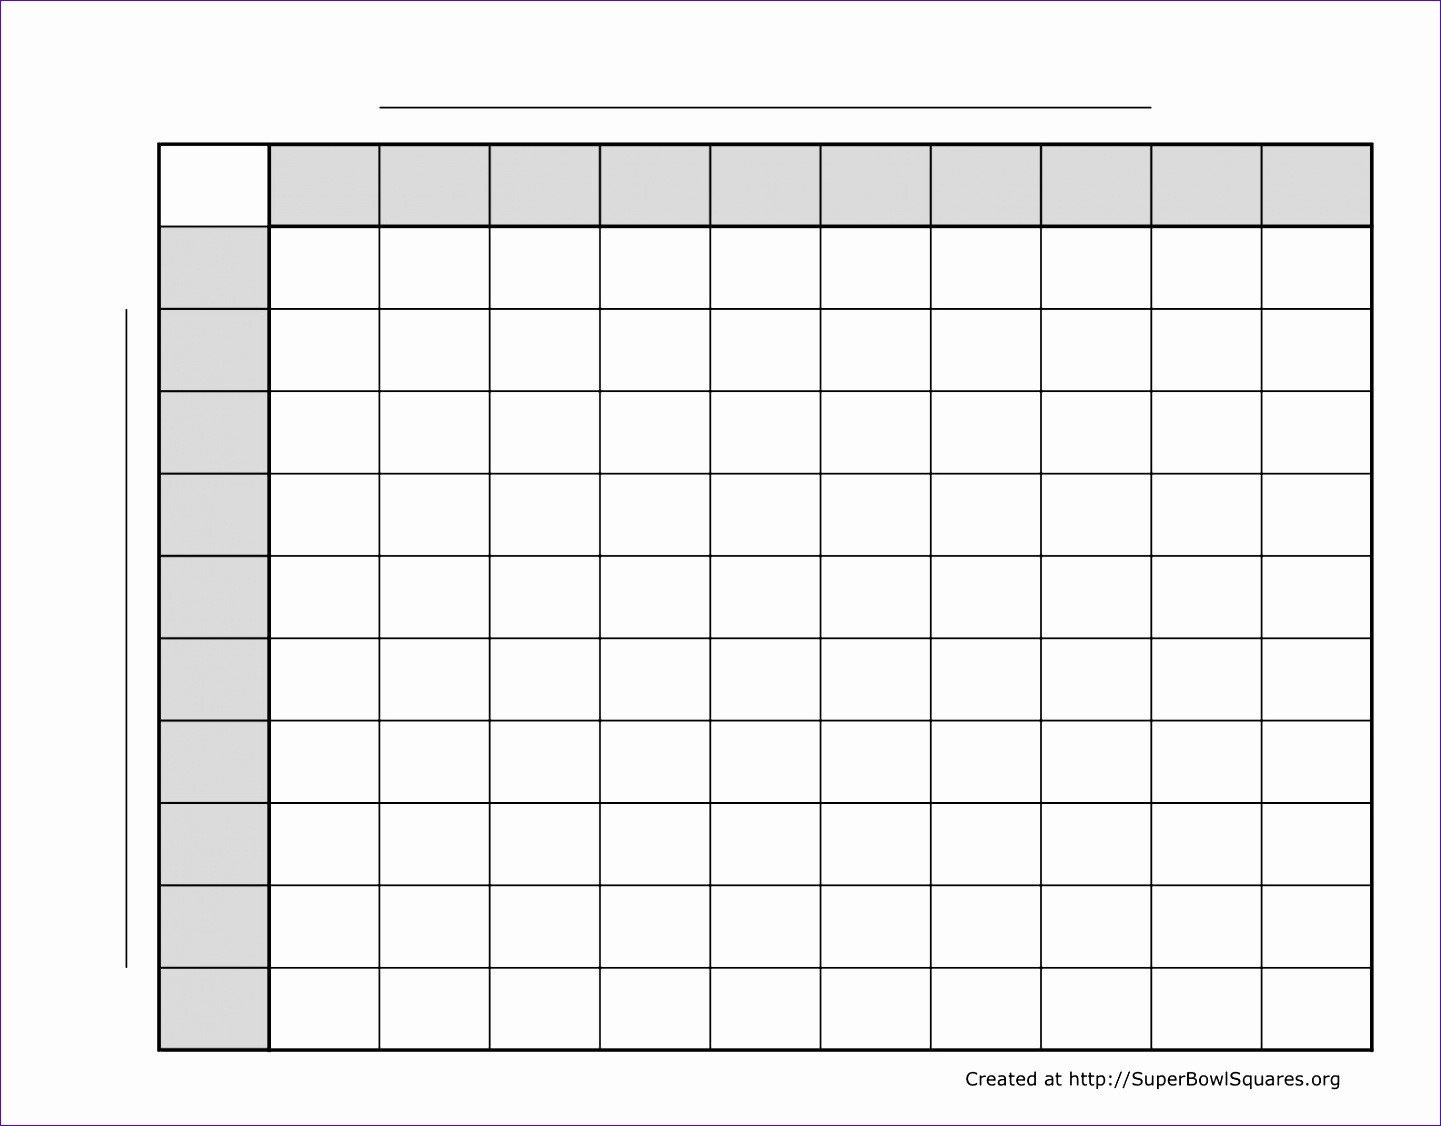 Super Bowl Squares Template Excel 10 Super Bowl Squares Template Excel Exceltemplates